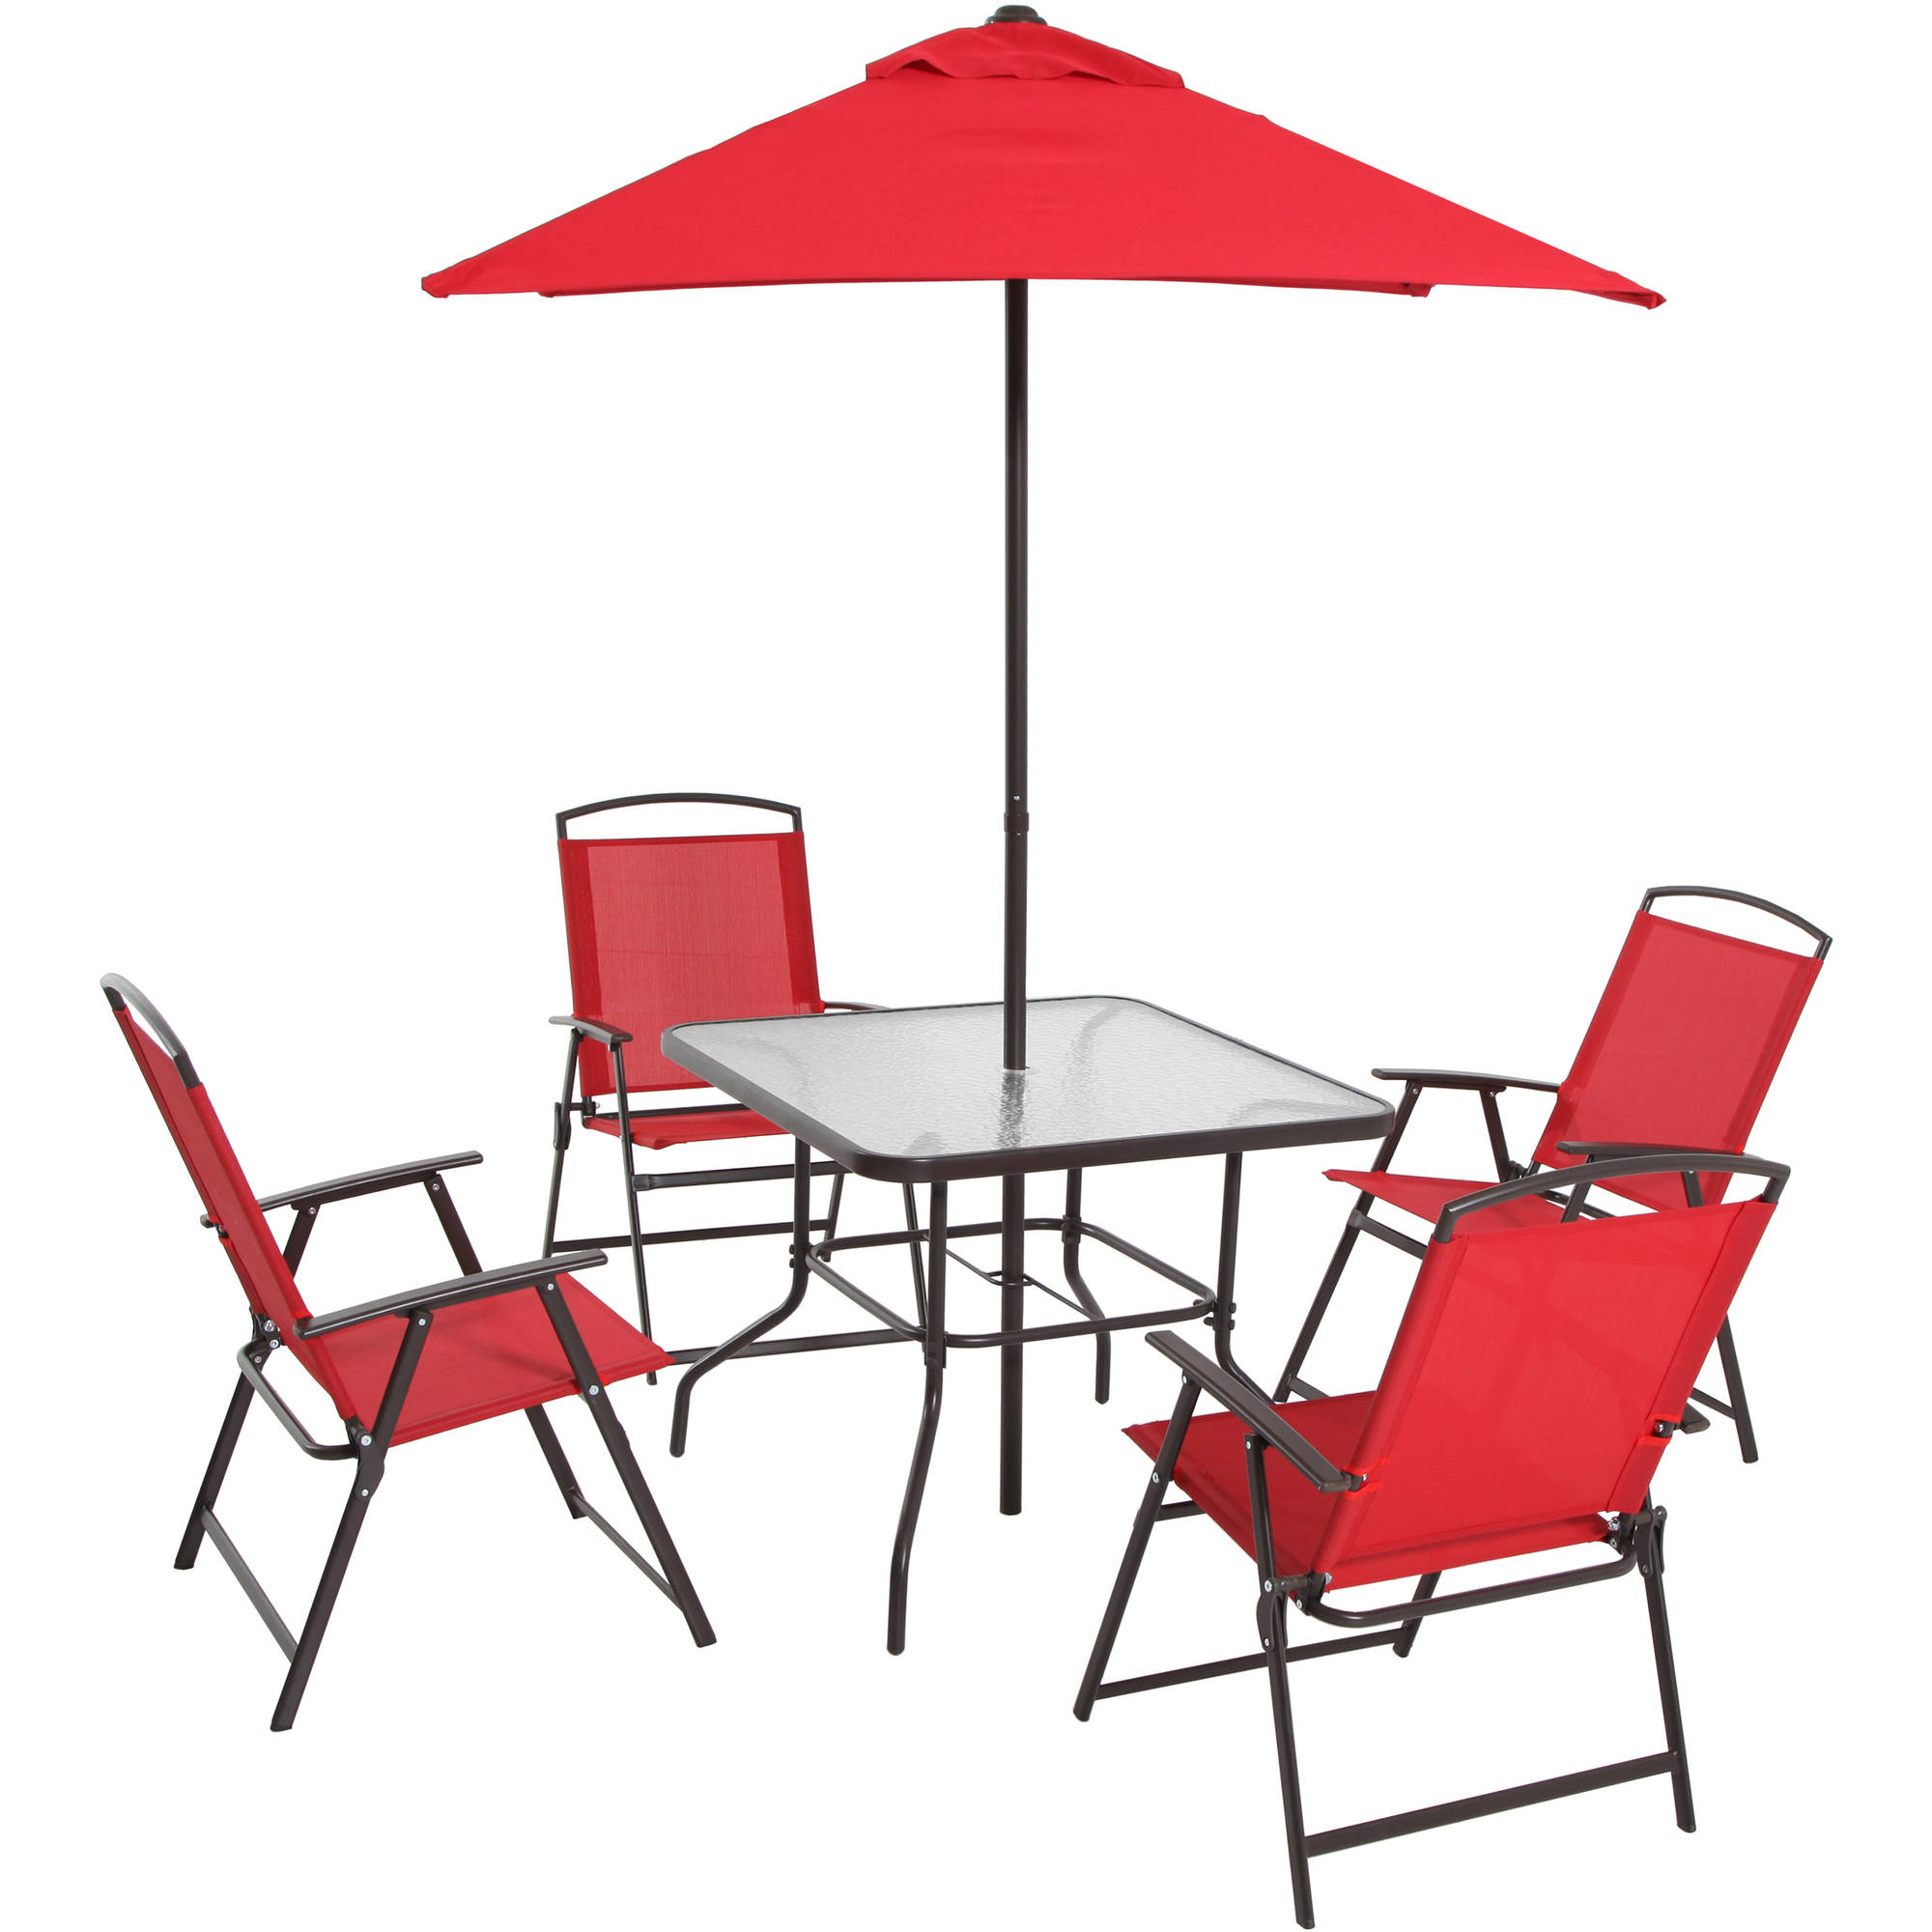 mainstays albany lane 6 piece outdoor patio dining set red